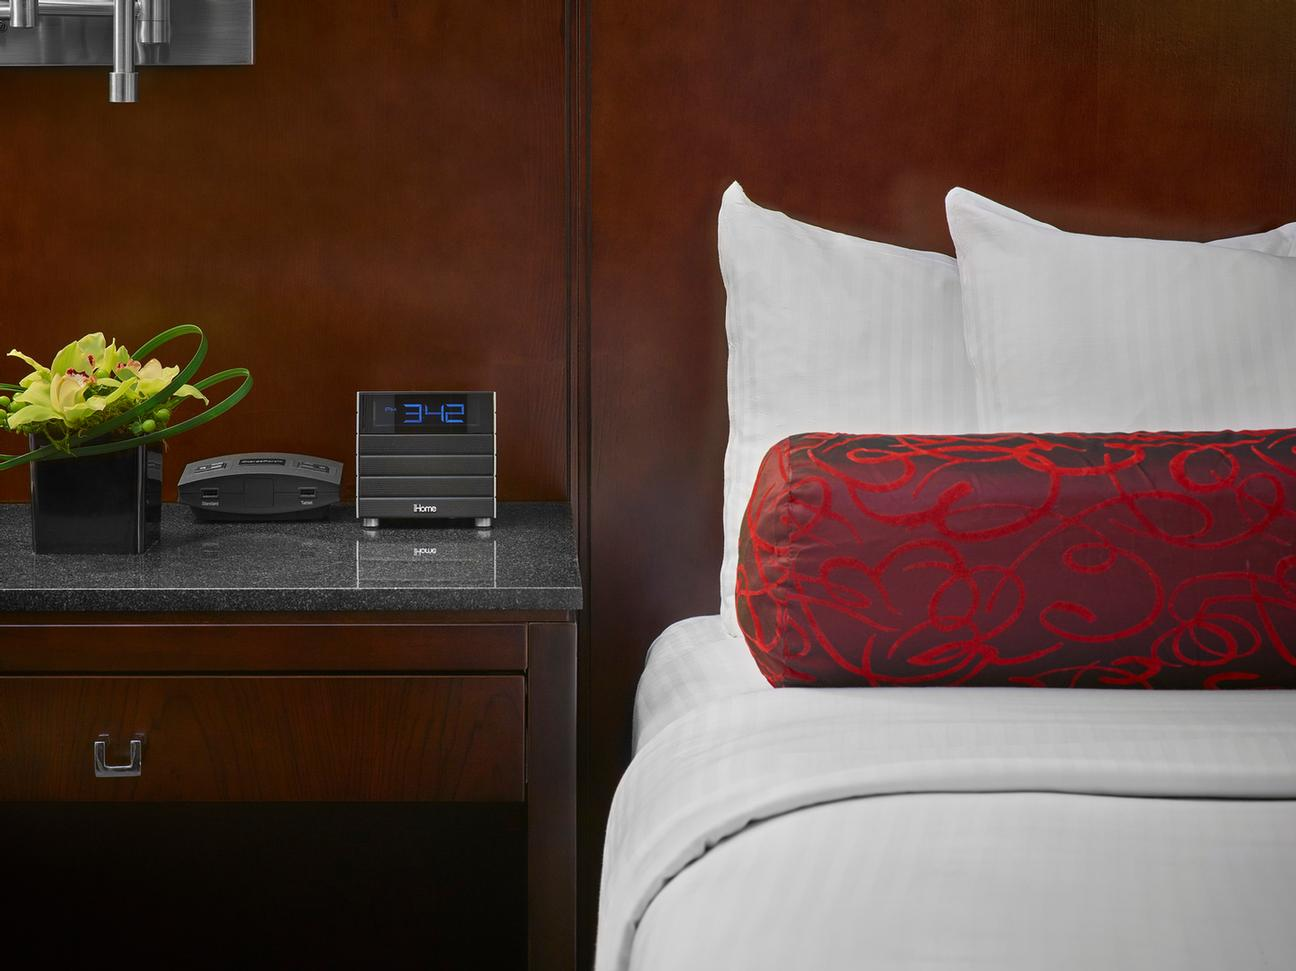 Lifestyle Guestroom Photo 4 of 6